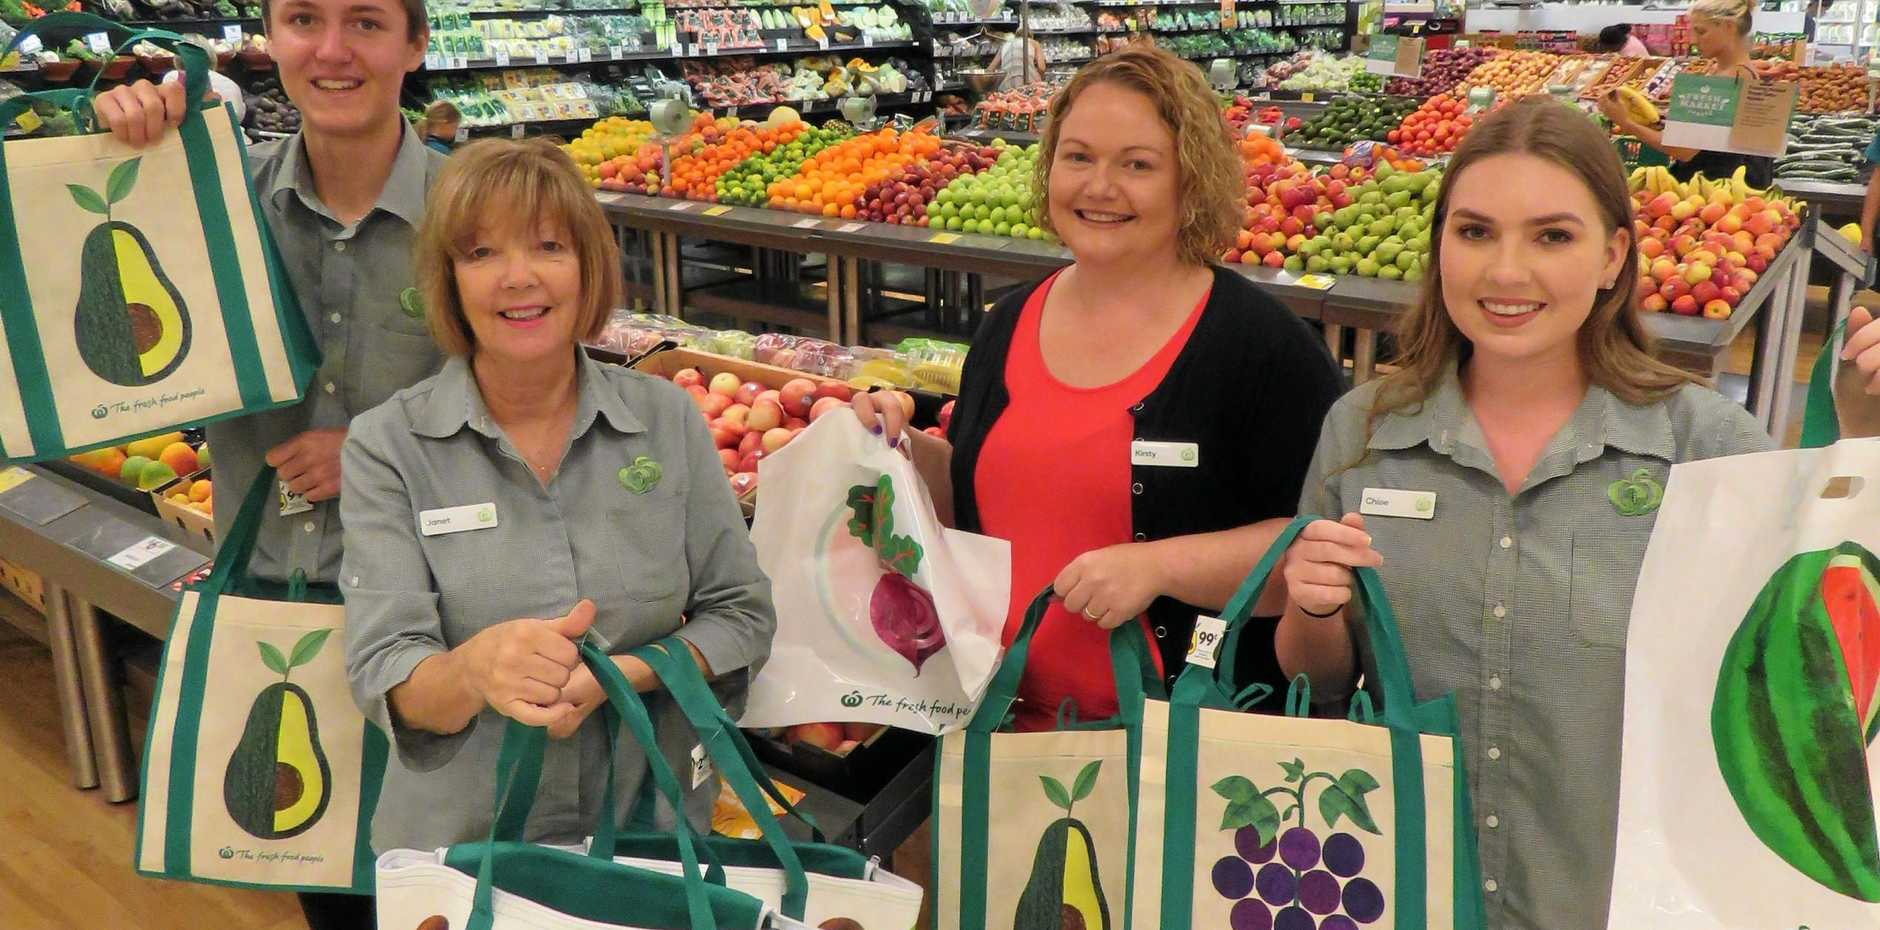 IN THE BAG: Staff Tome Pearce, Janet Reid, Kirsty Cousins and Chloe Garrett from Woolworths Noosa Civic present their re-usable bags.